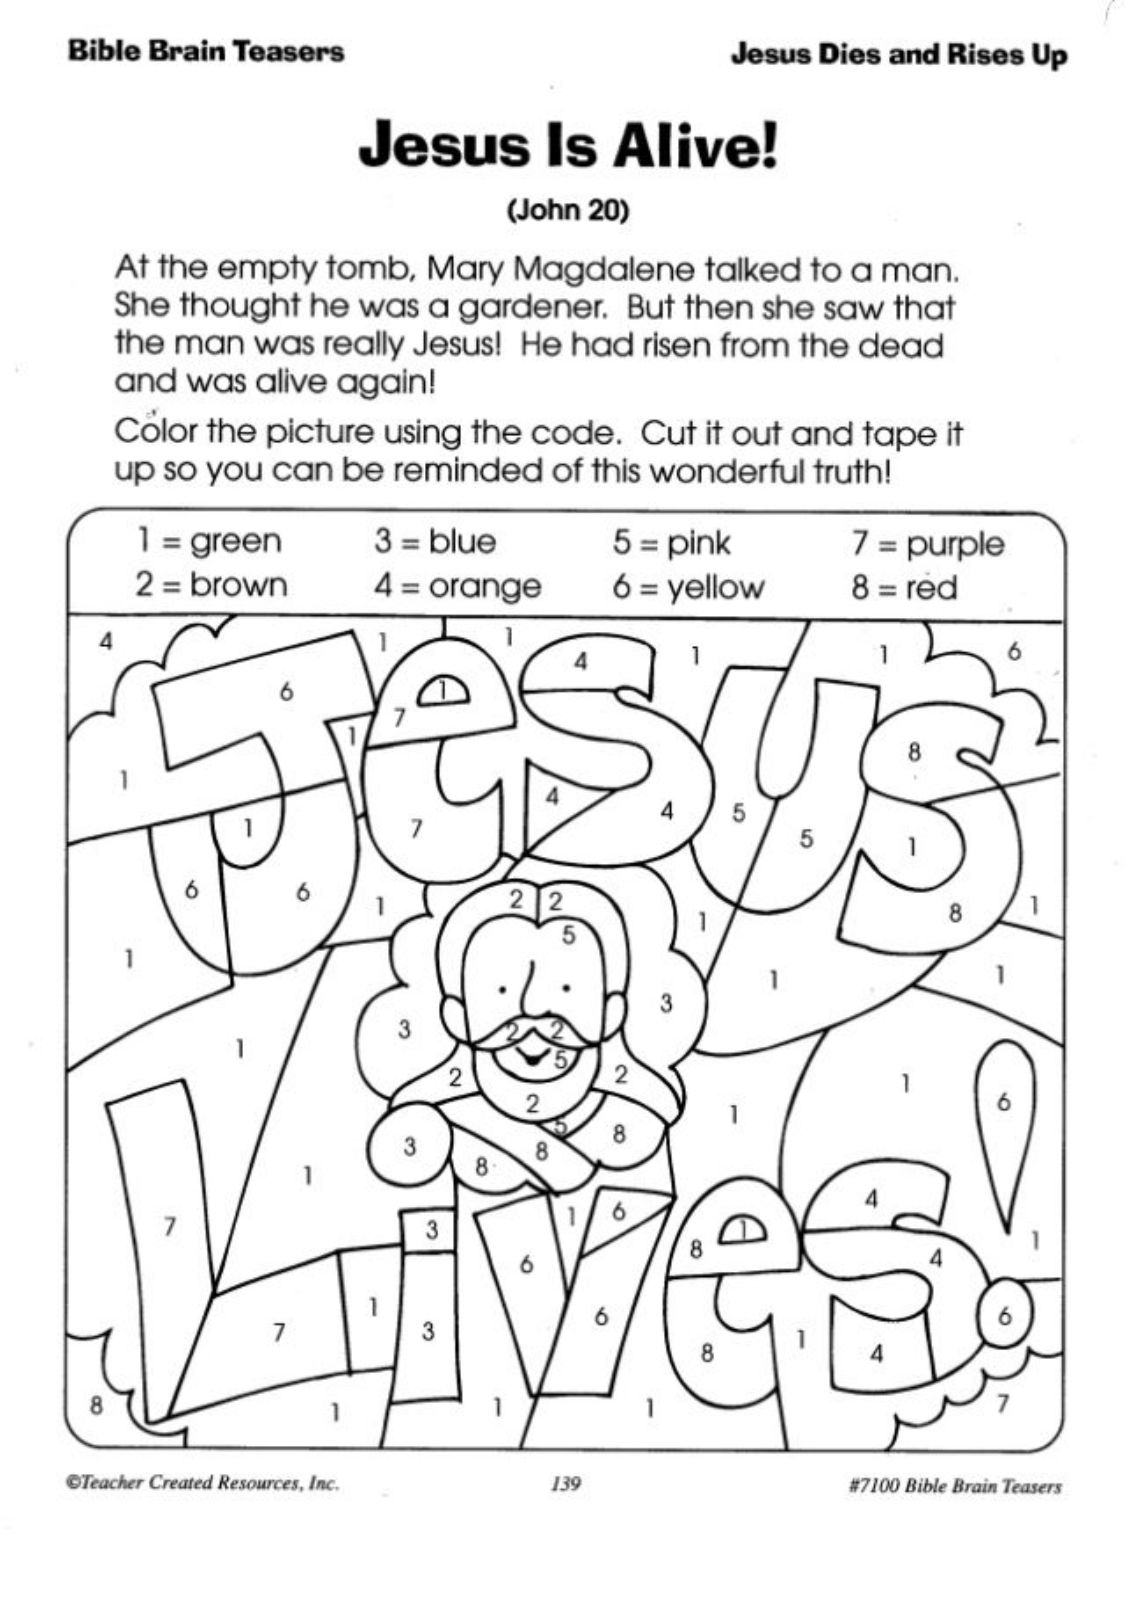 coloring bible story pictures for sunday school free printable christian coloring pages for kids best sunday story bible school coloring pictures for